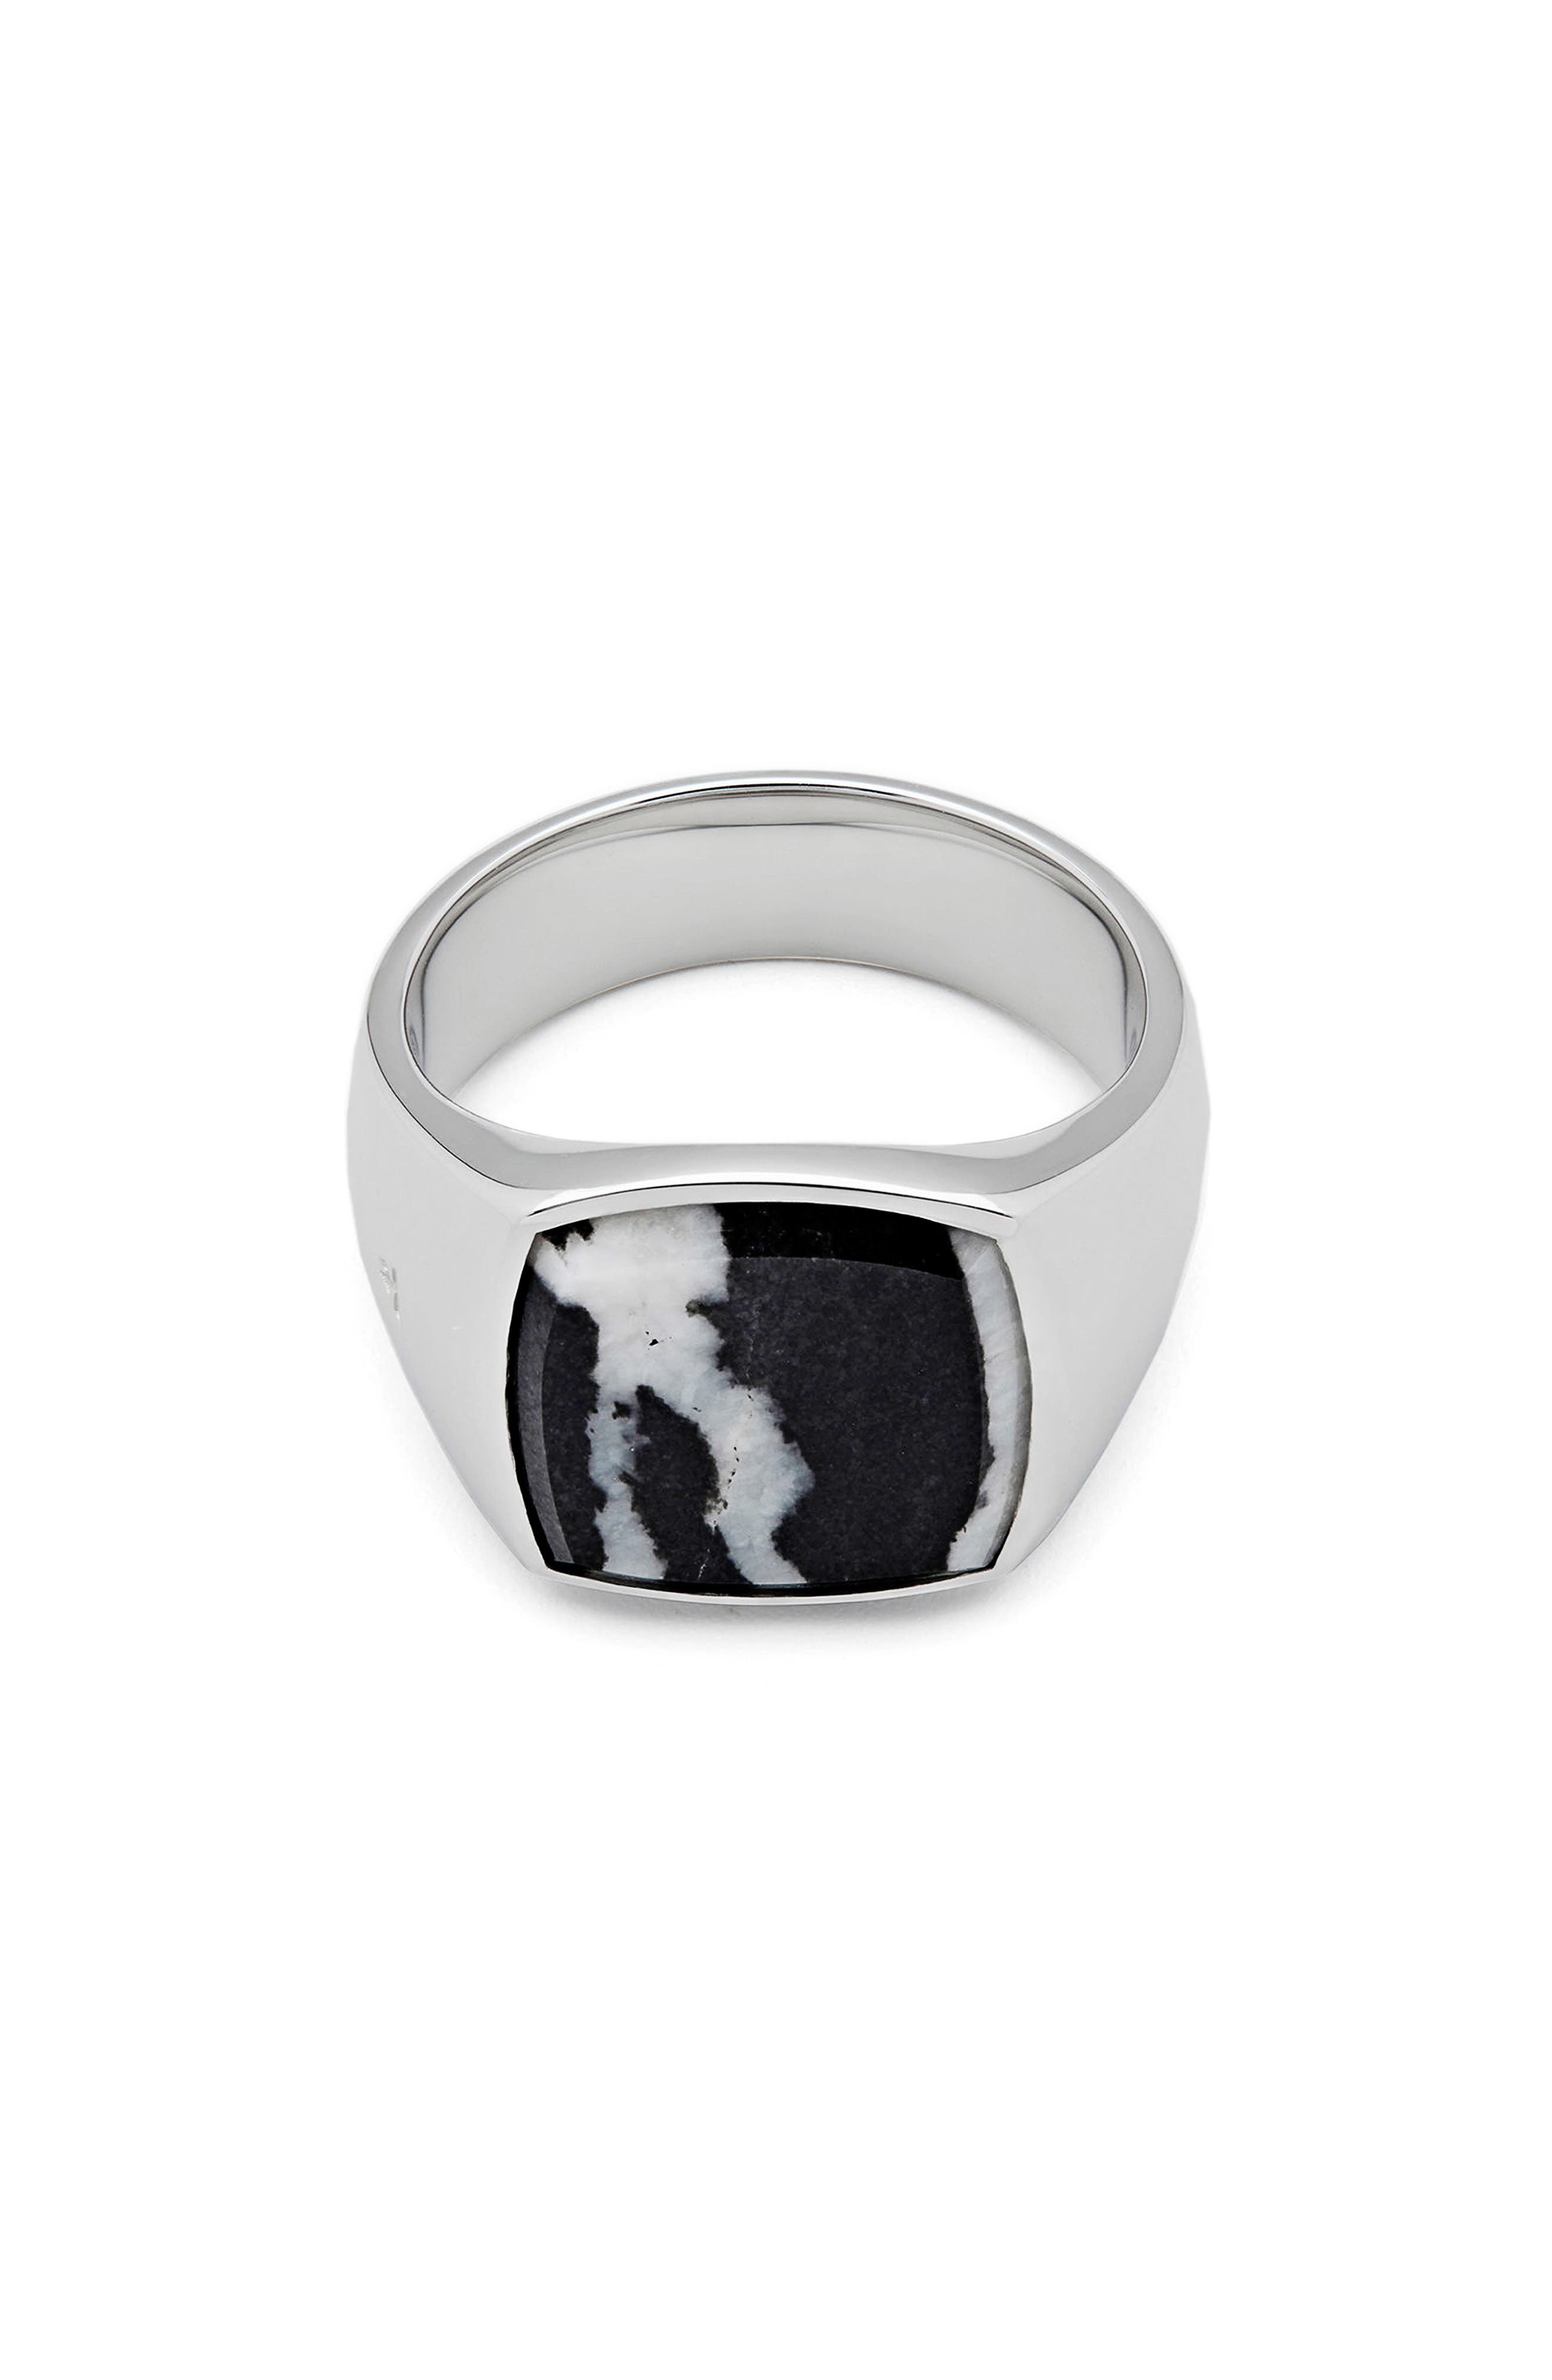 Men's Zebra Marble Cushion Signet Ring,                             Main thumbnail 1, color,                             925 STERLING SILVER